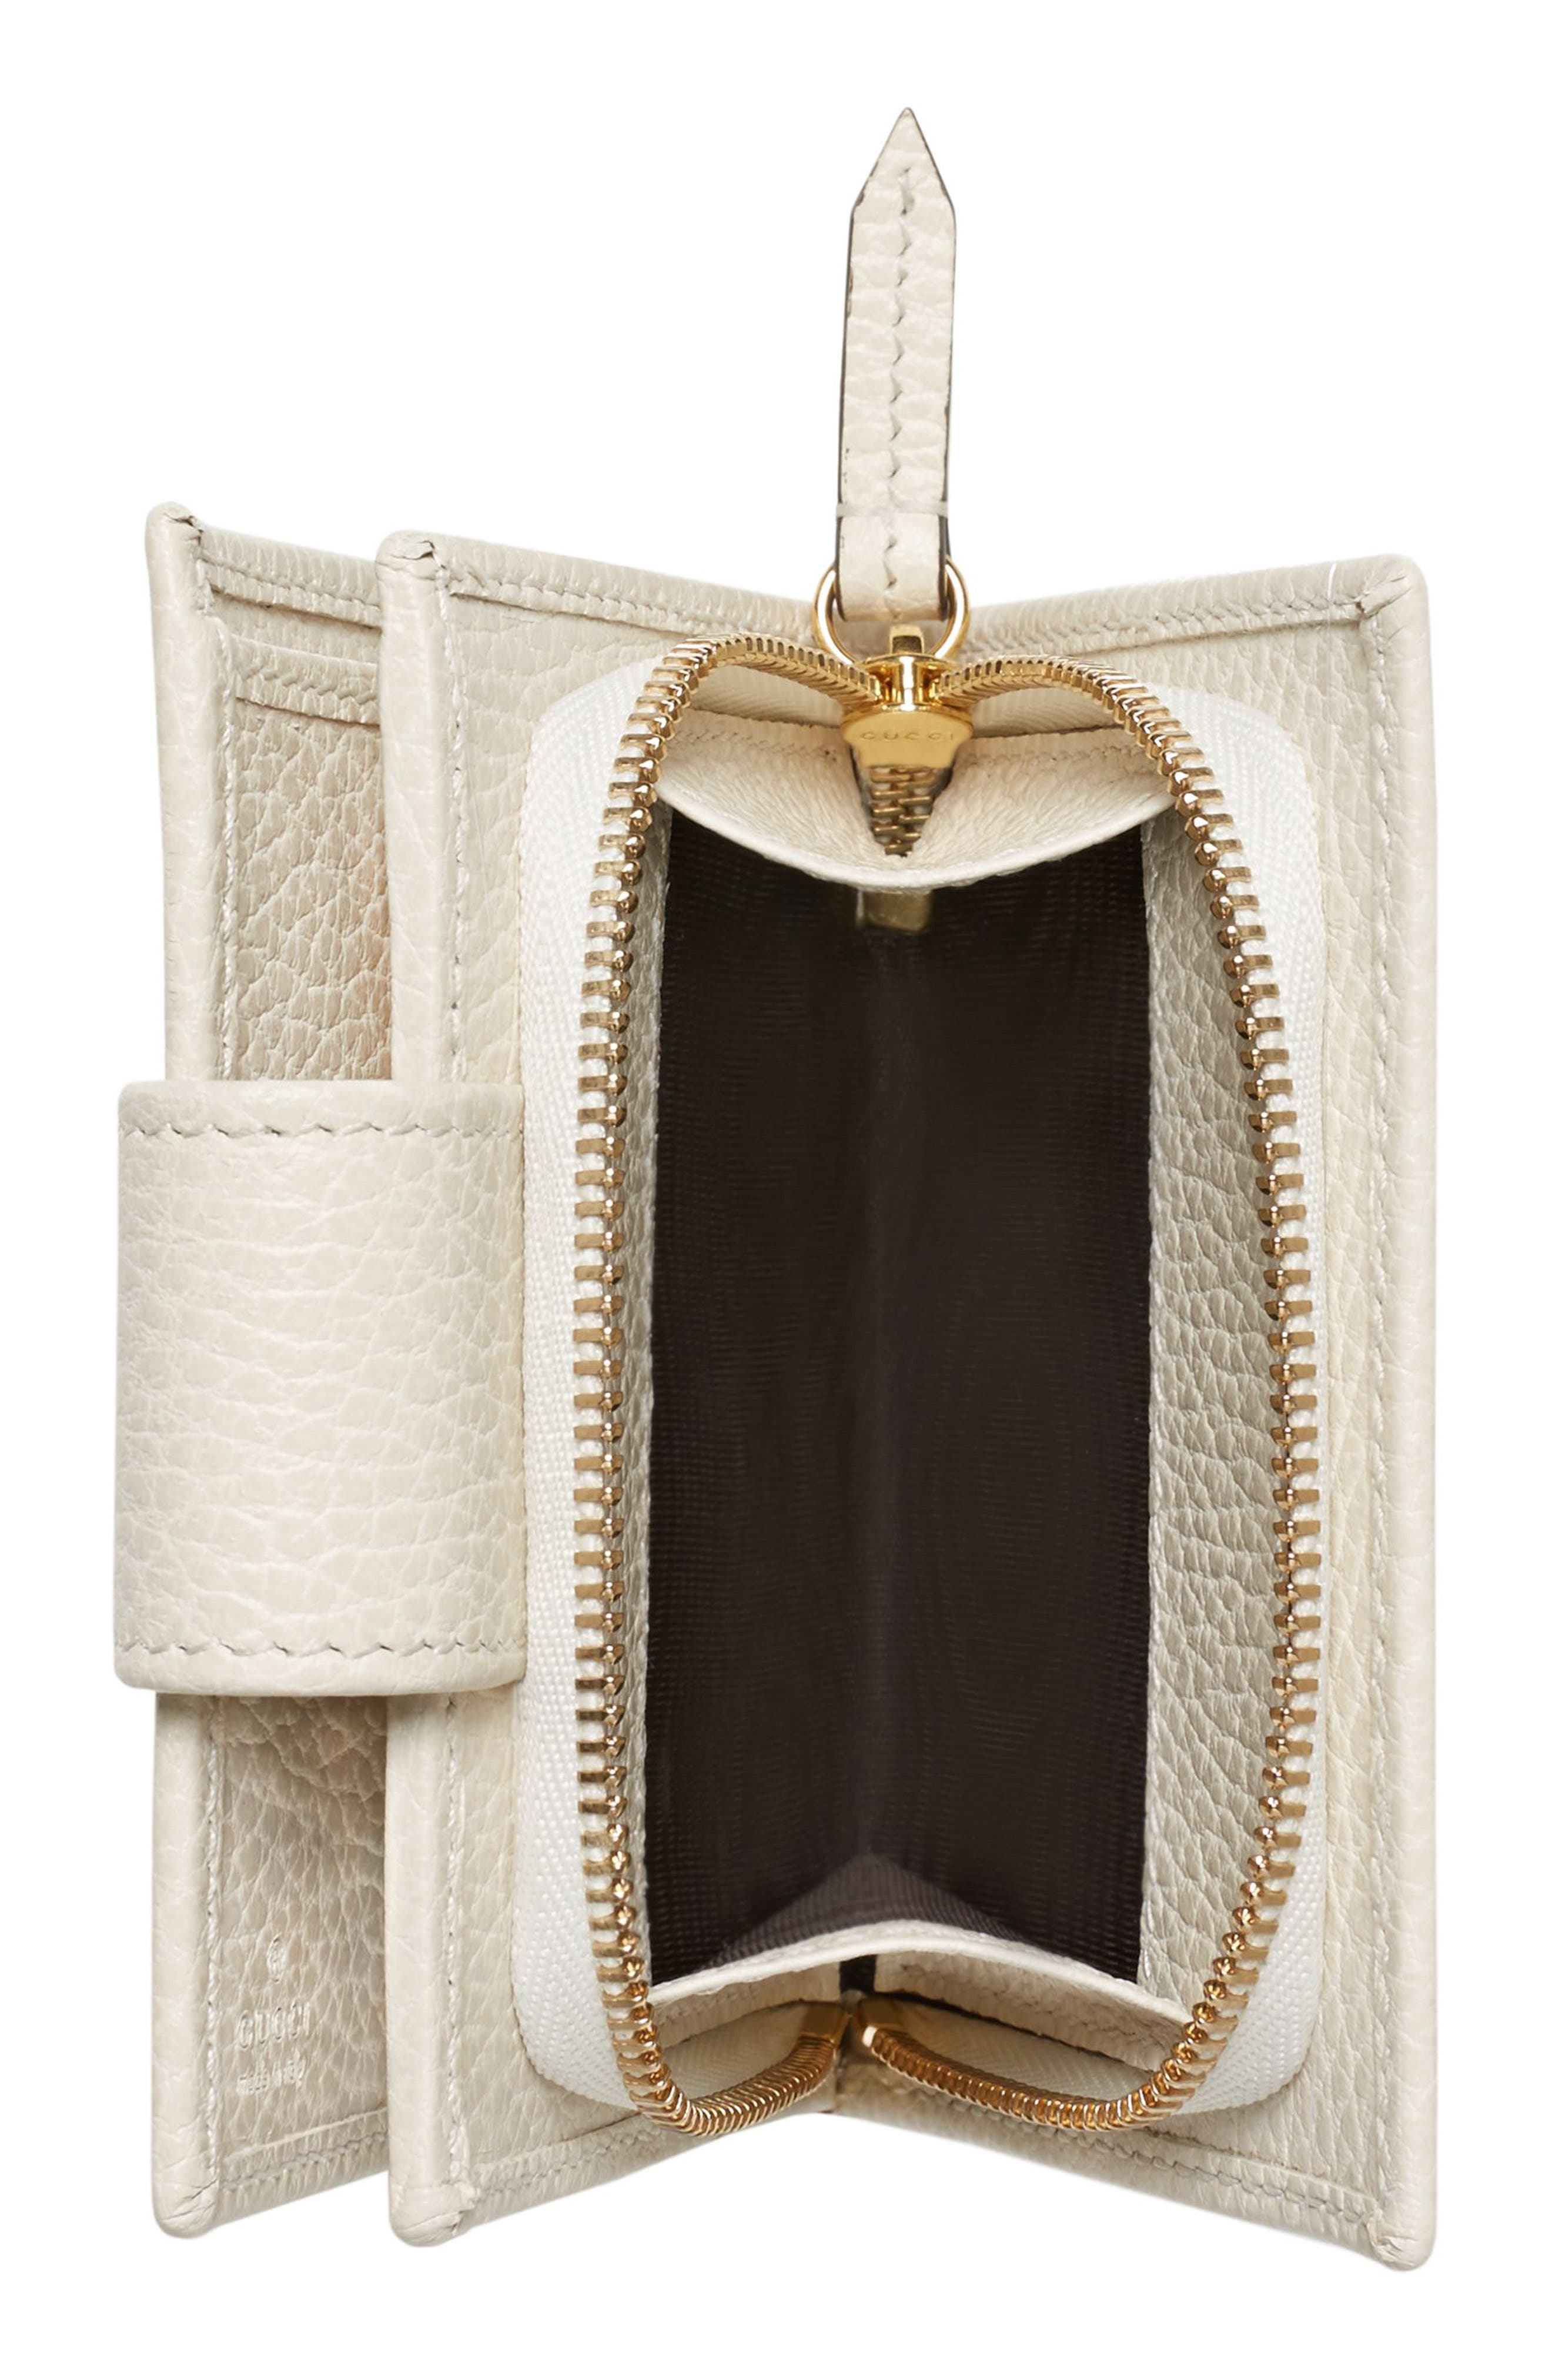 GG Marmont Leather Wallet,                             Alternate thumbnail 4, color,                             MYSTIC WHITE